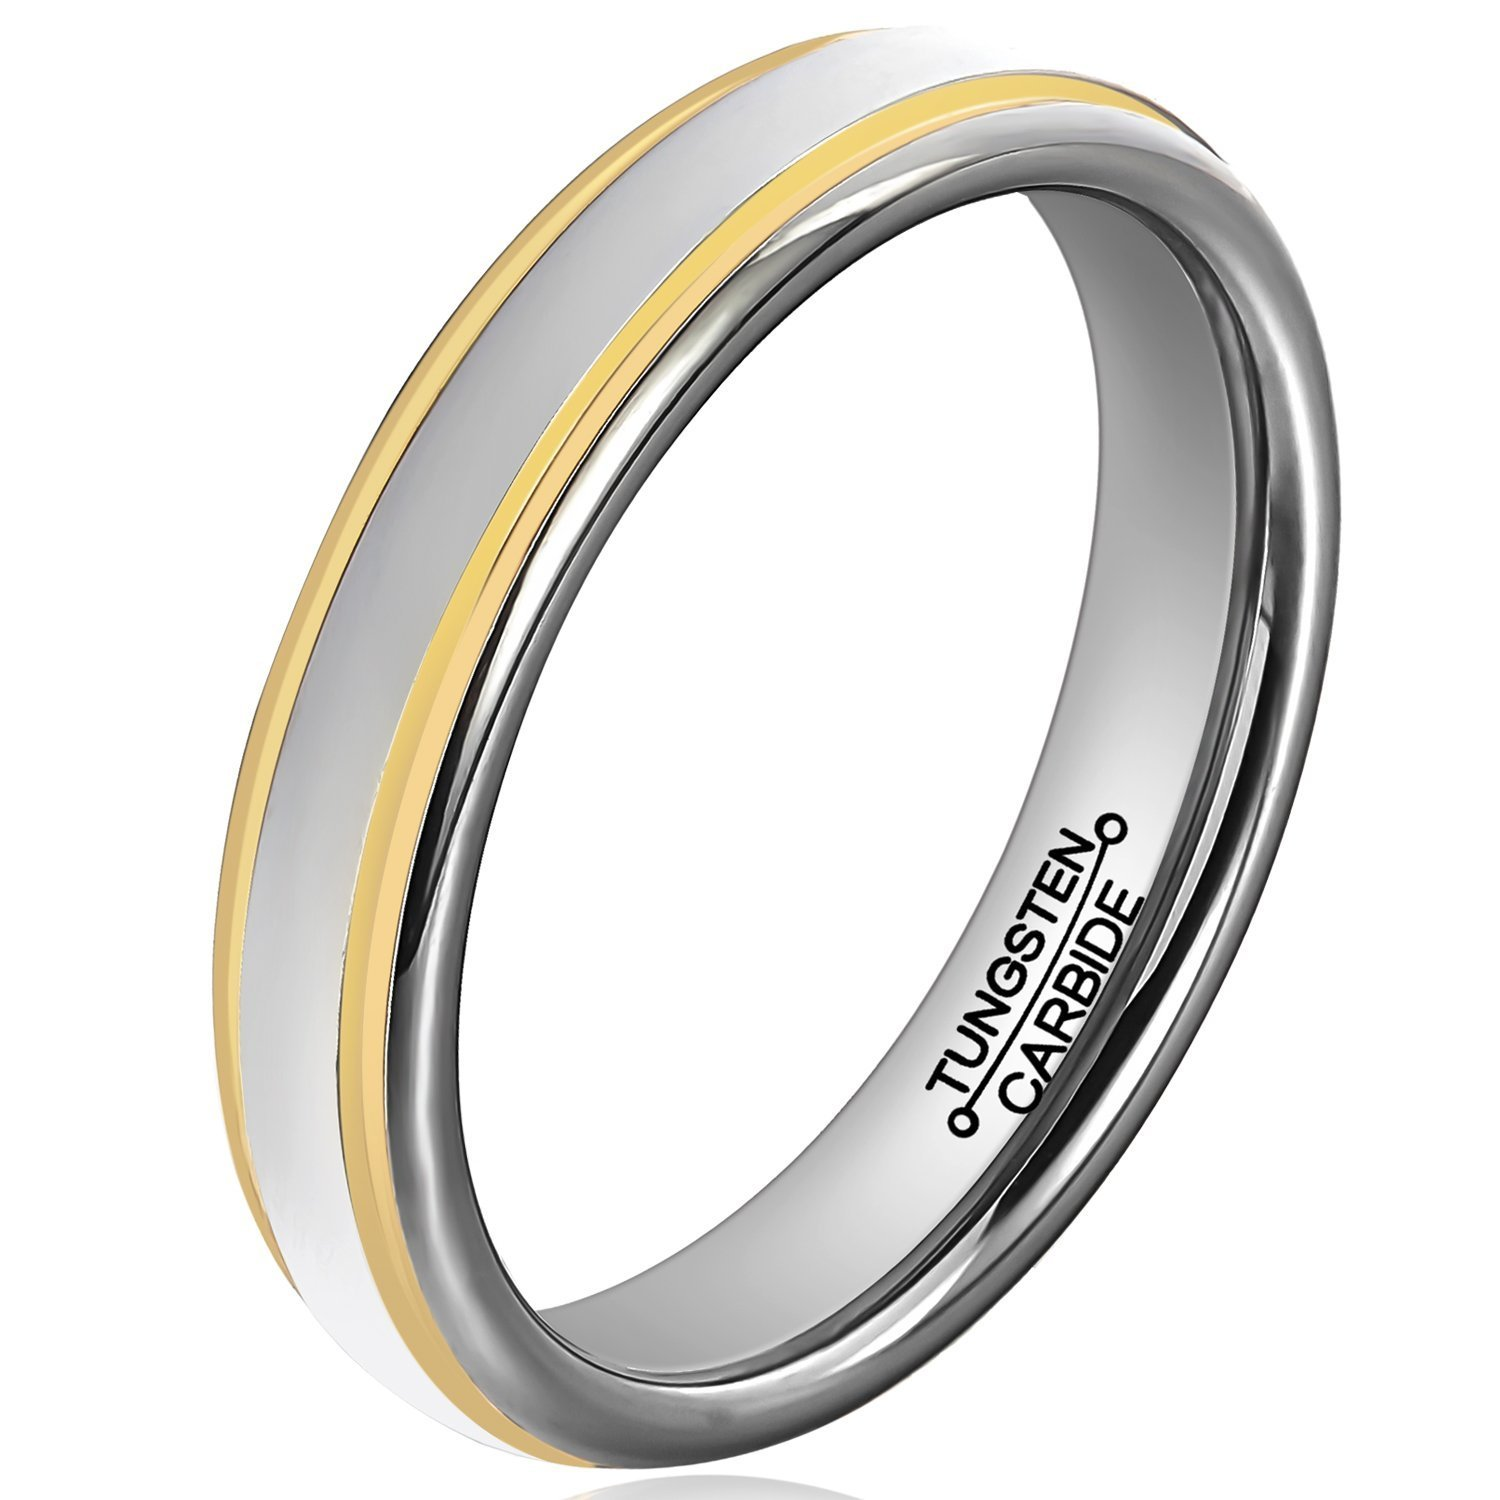 Primary image for 4mm Tungsten Ring Wedding Band Comfort Fit 18K Gold Grooves; 4-16 & Half